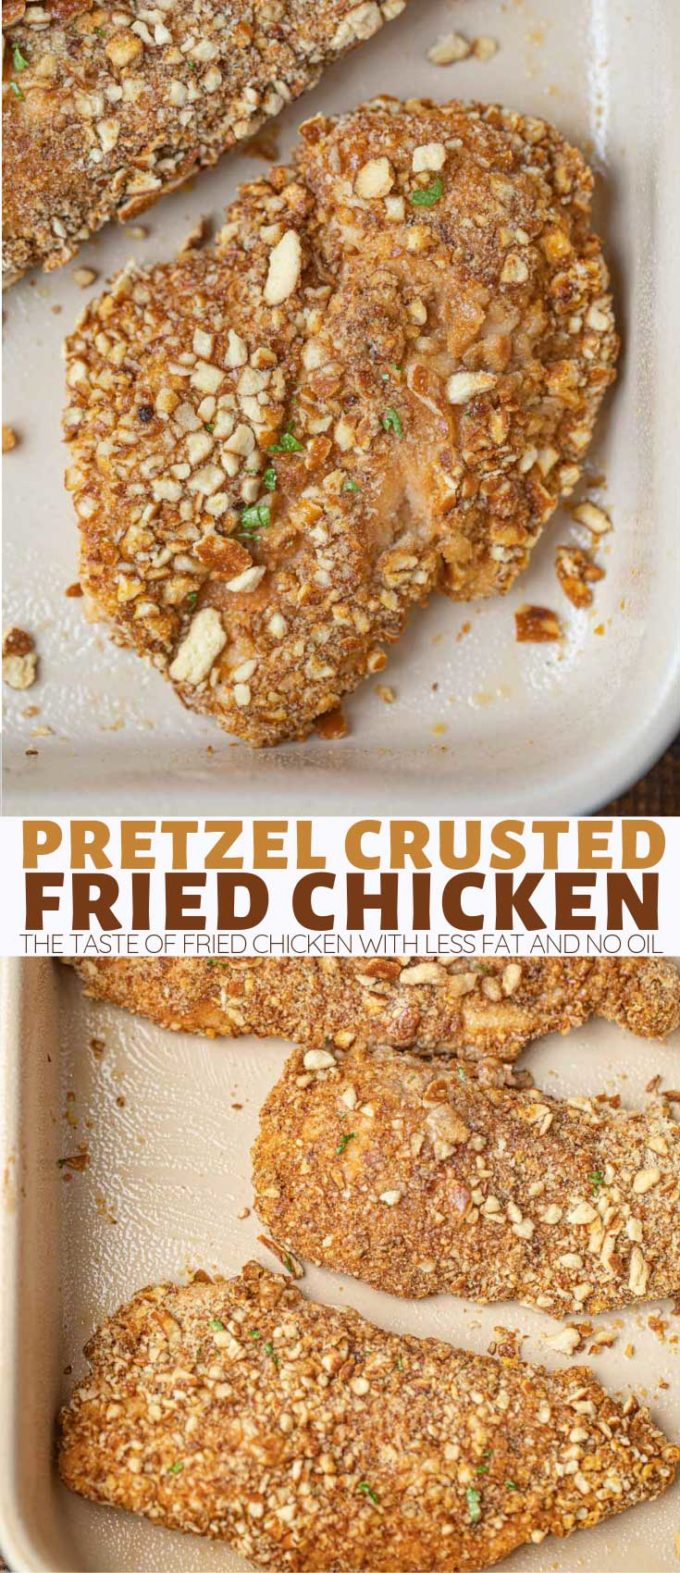 Pretzel Baked Chicken